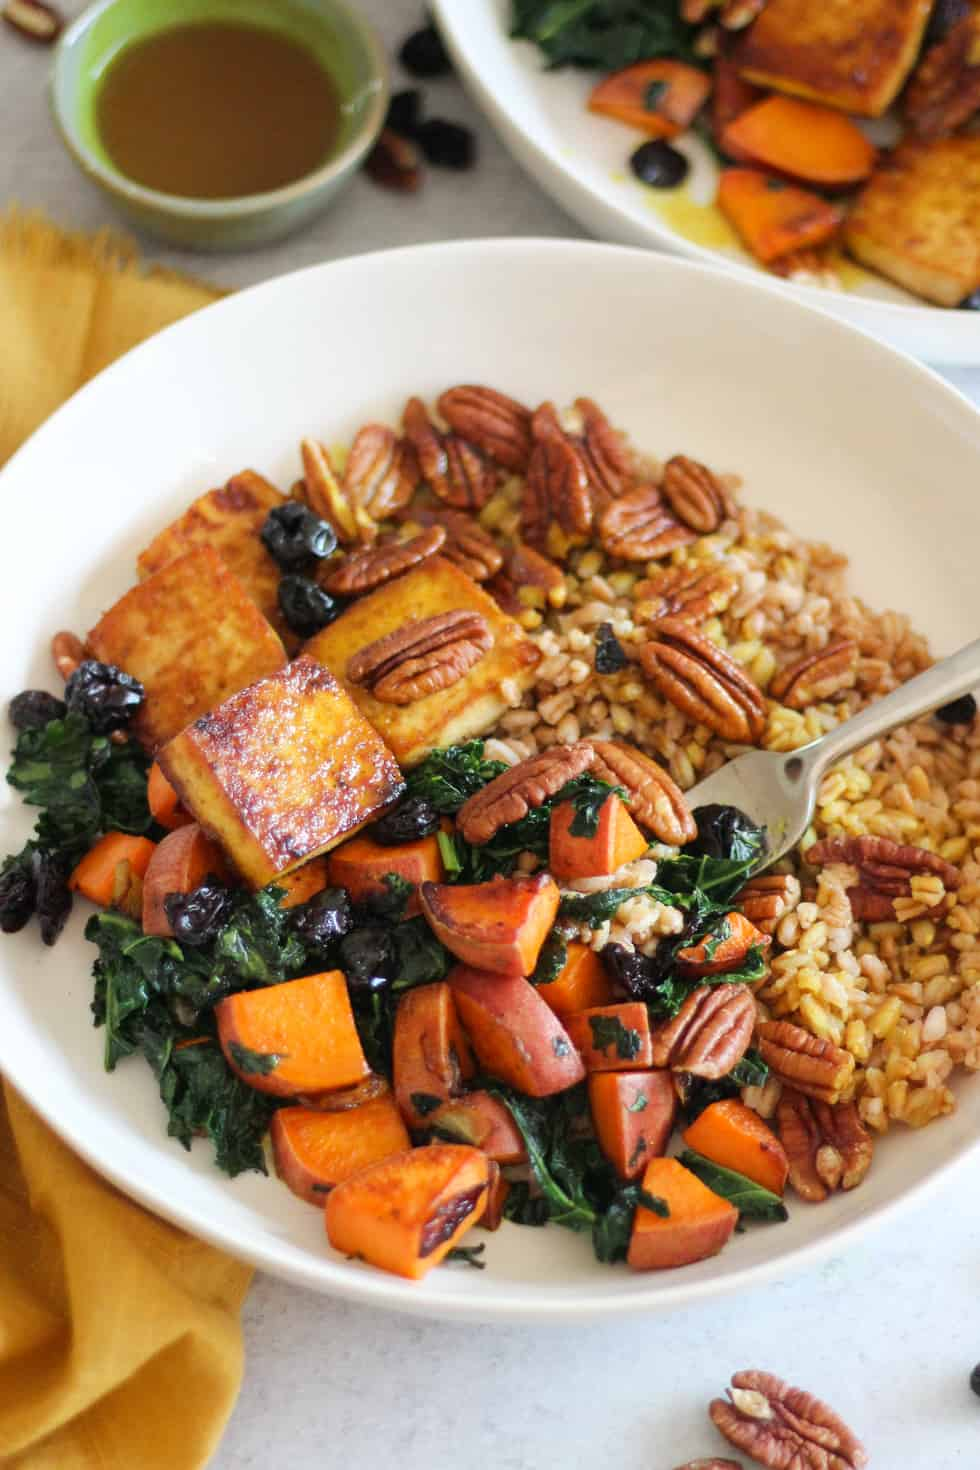 Baked Tofu Bowls with sweet potato and kale in white bowl with yellow napkin.